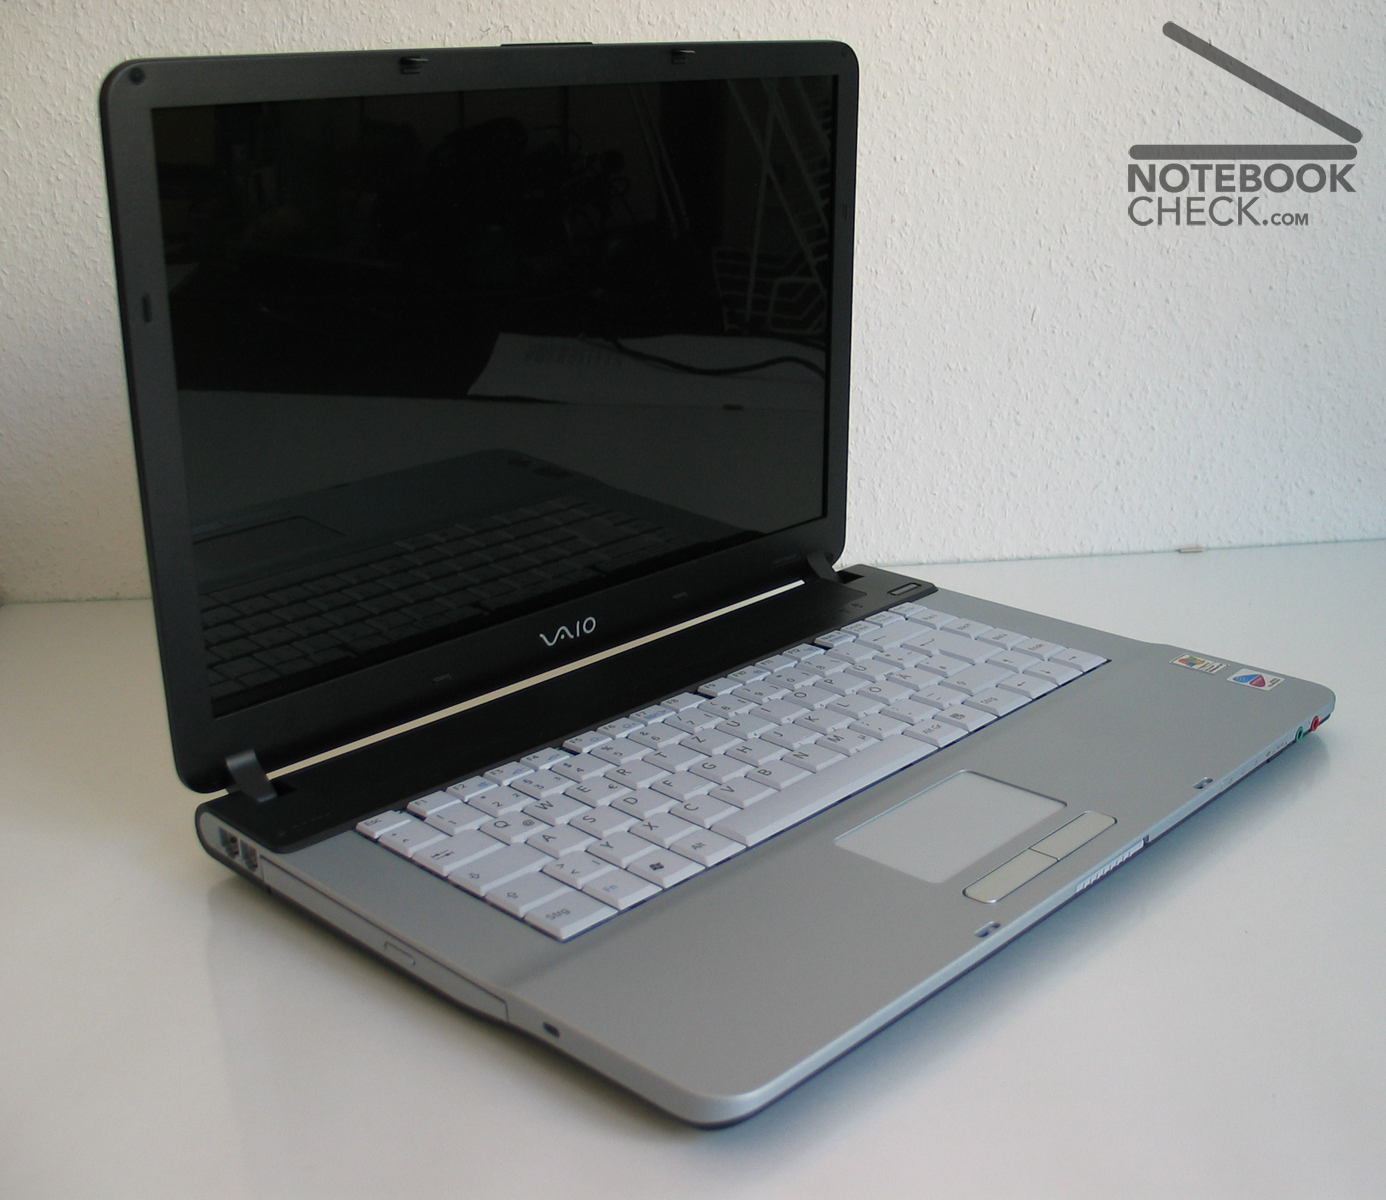 Sony Vaio Vgn Cr36 Notebook Review